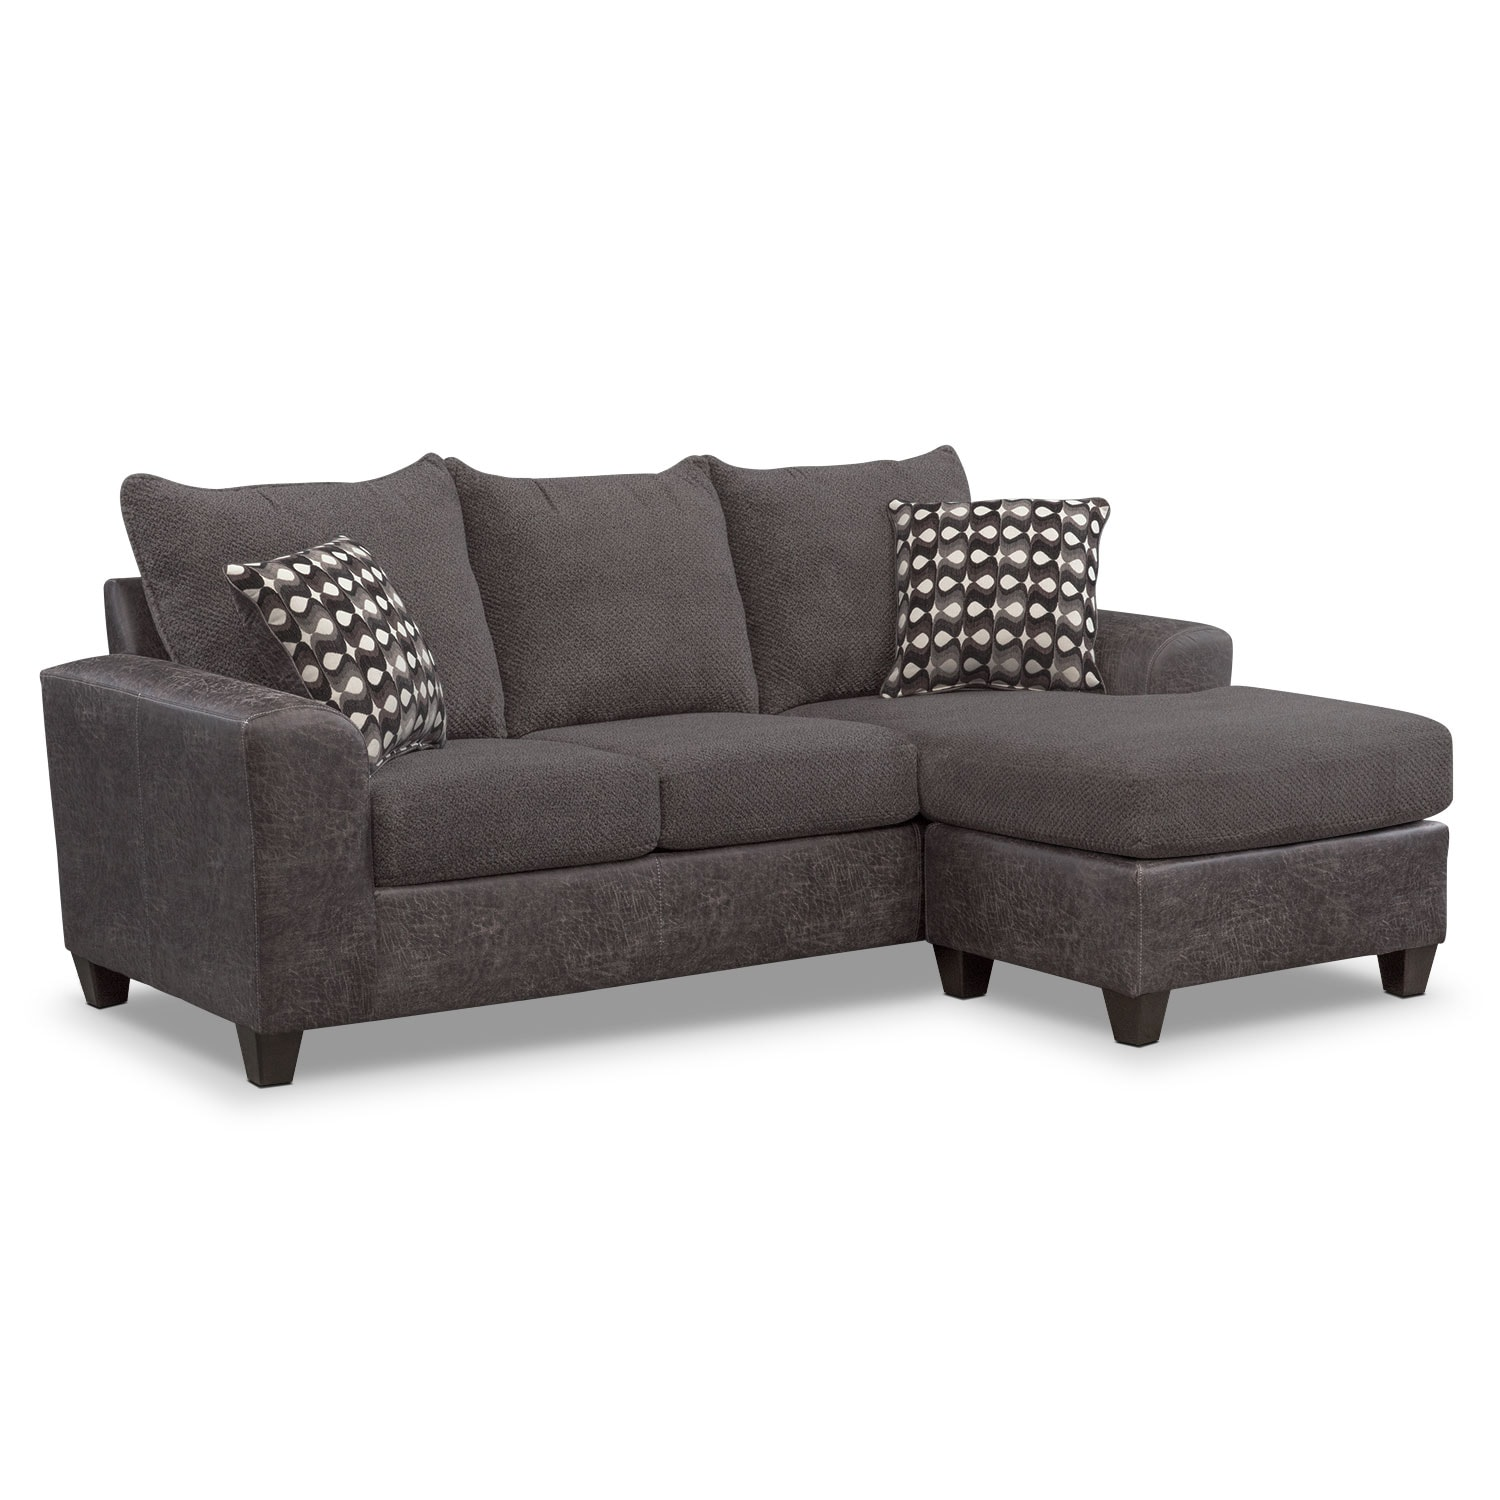 Sofas & Couches | Living Room Seating | Value City Furniture and ...